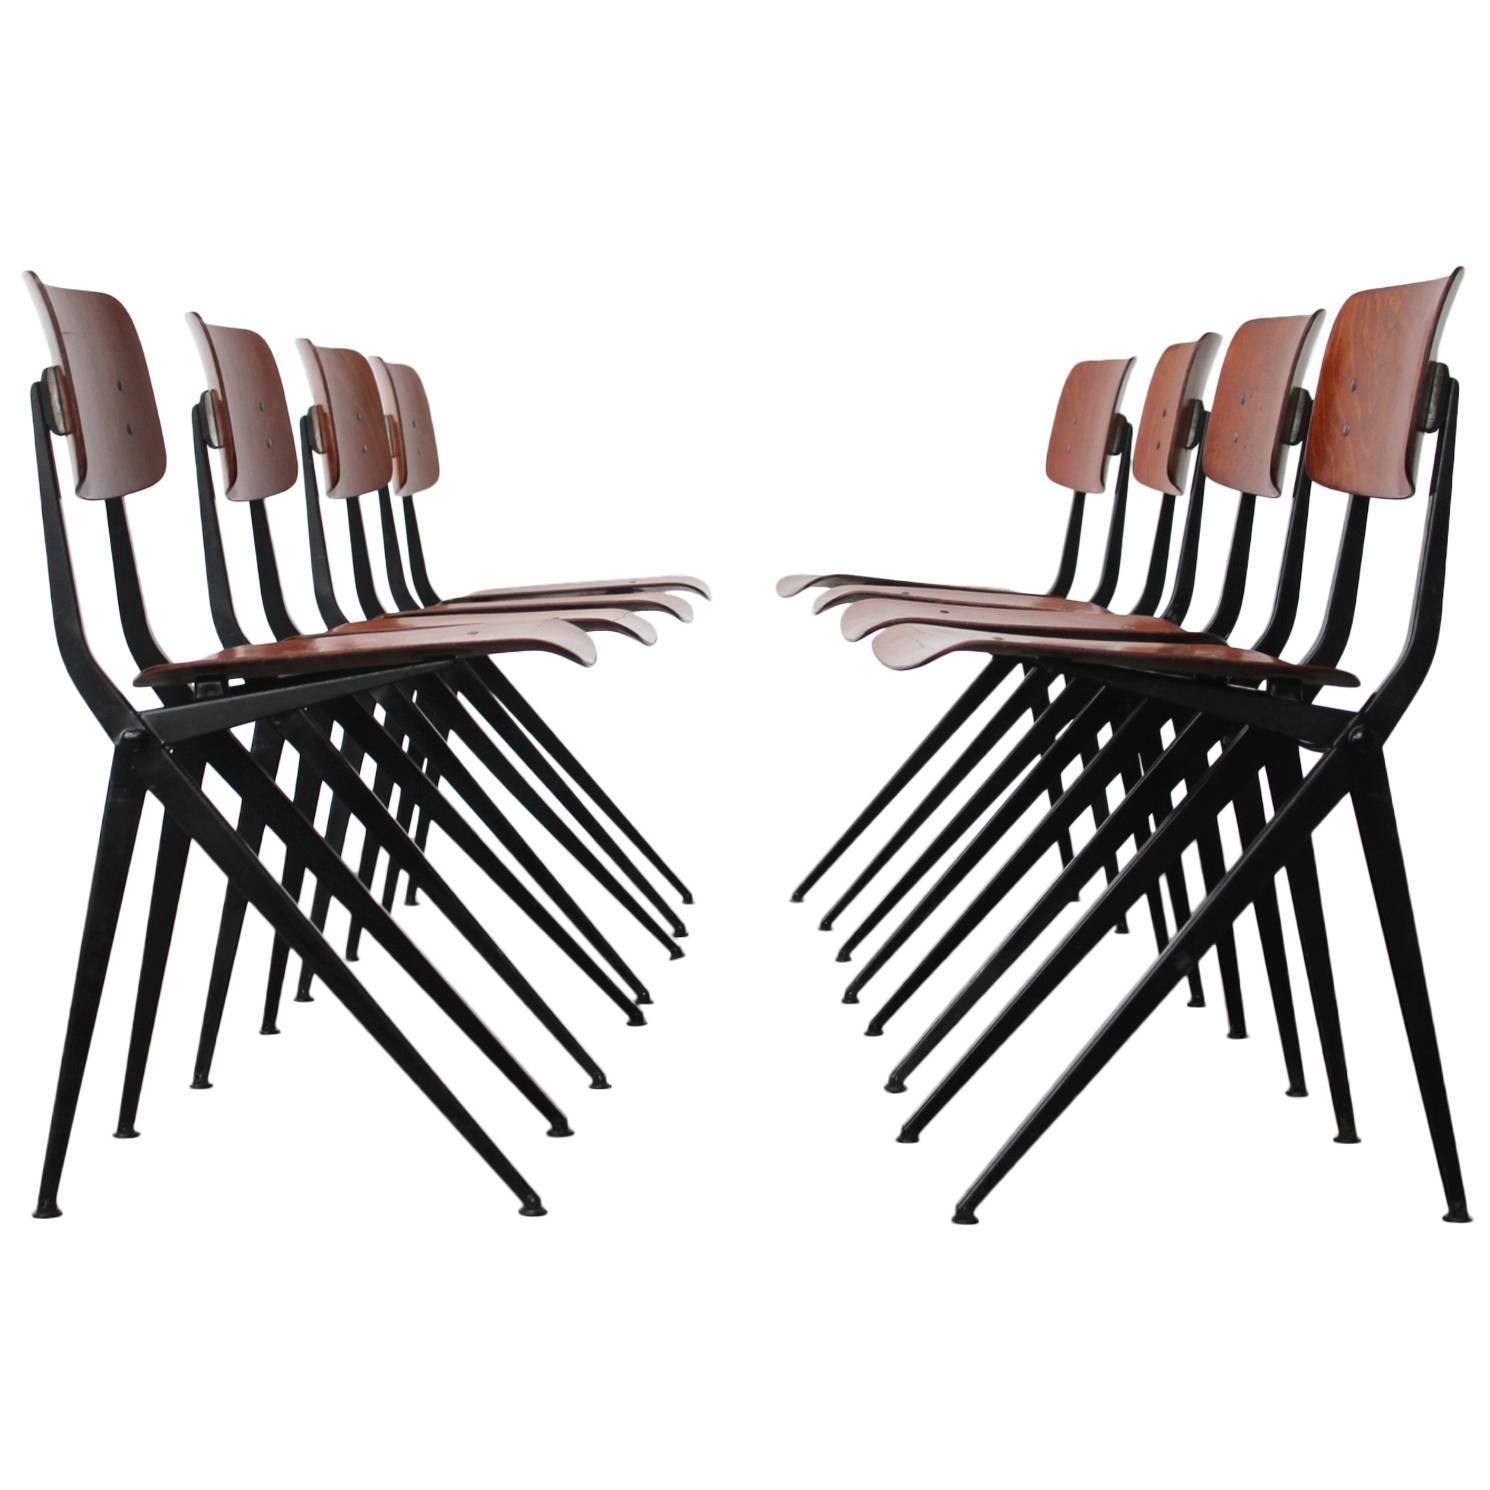 Set of 8 Rare Compass Leg Dining Chairs by Marko in Jean Prouvé ...